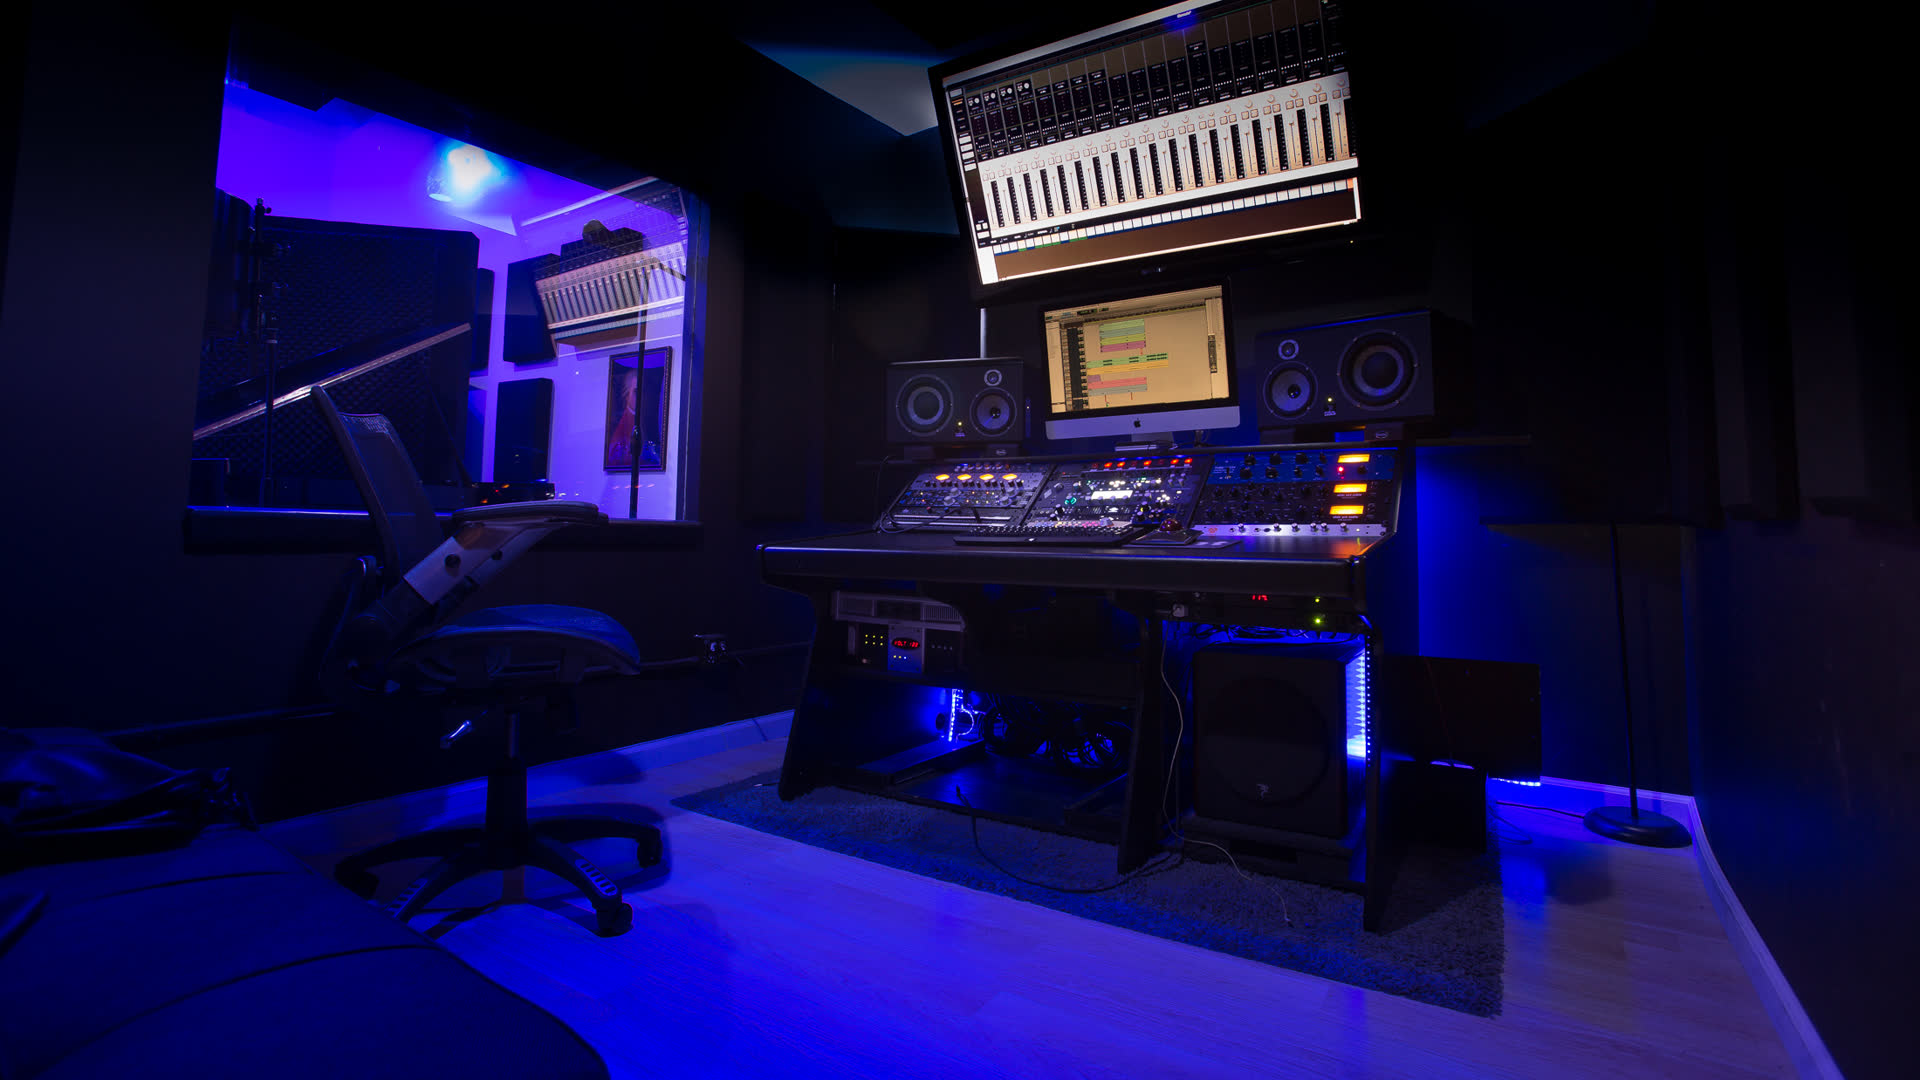 Top 10 Recording Studio Spaces In Los Angeles Ca Rent Best Places And Locations For Recording Studio Cheap Rental Reviews Good Prices Popular Venues Giggster